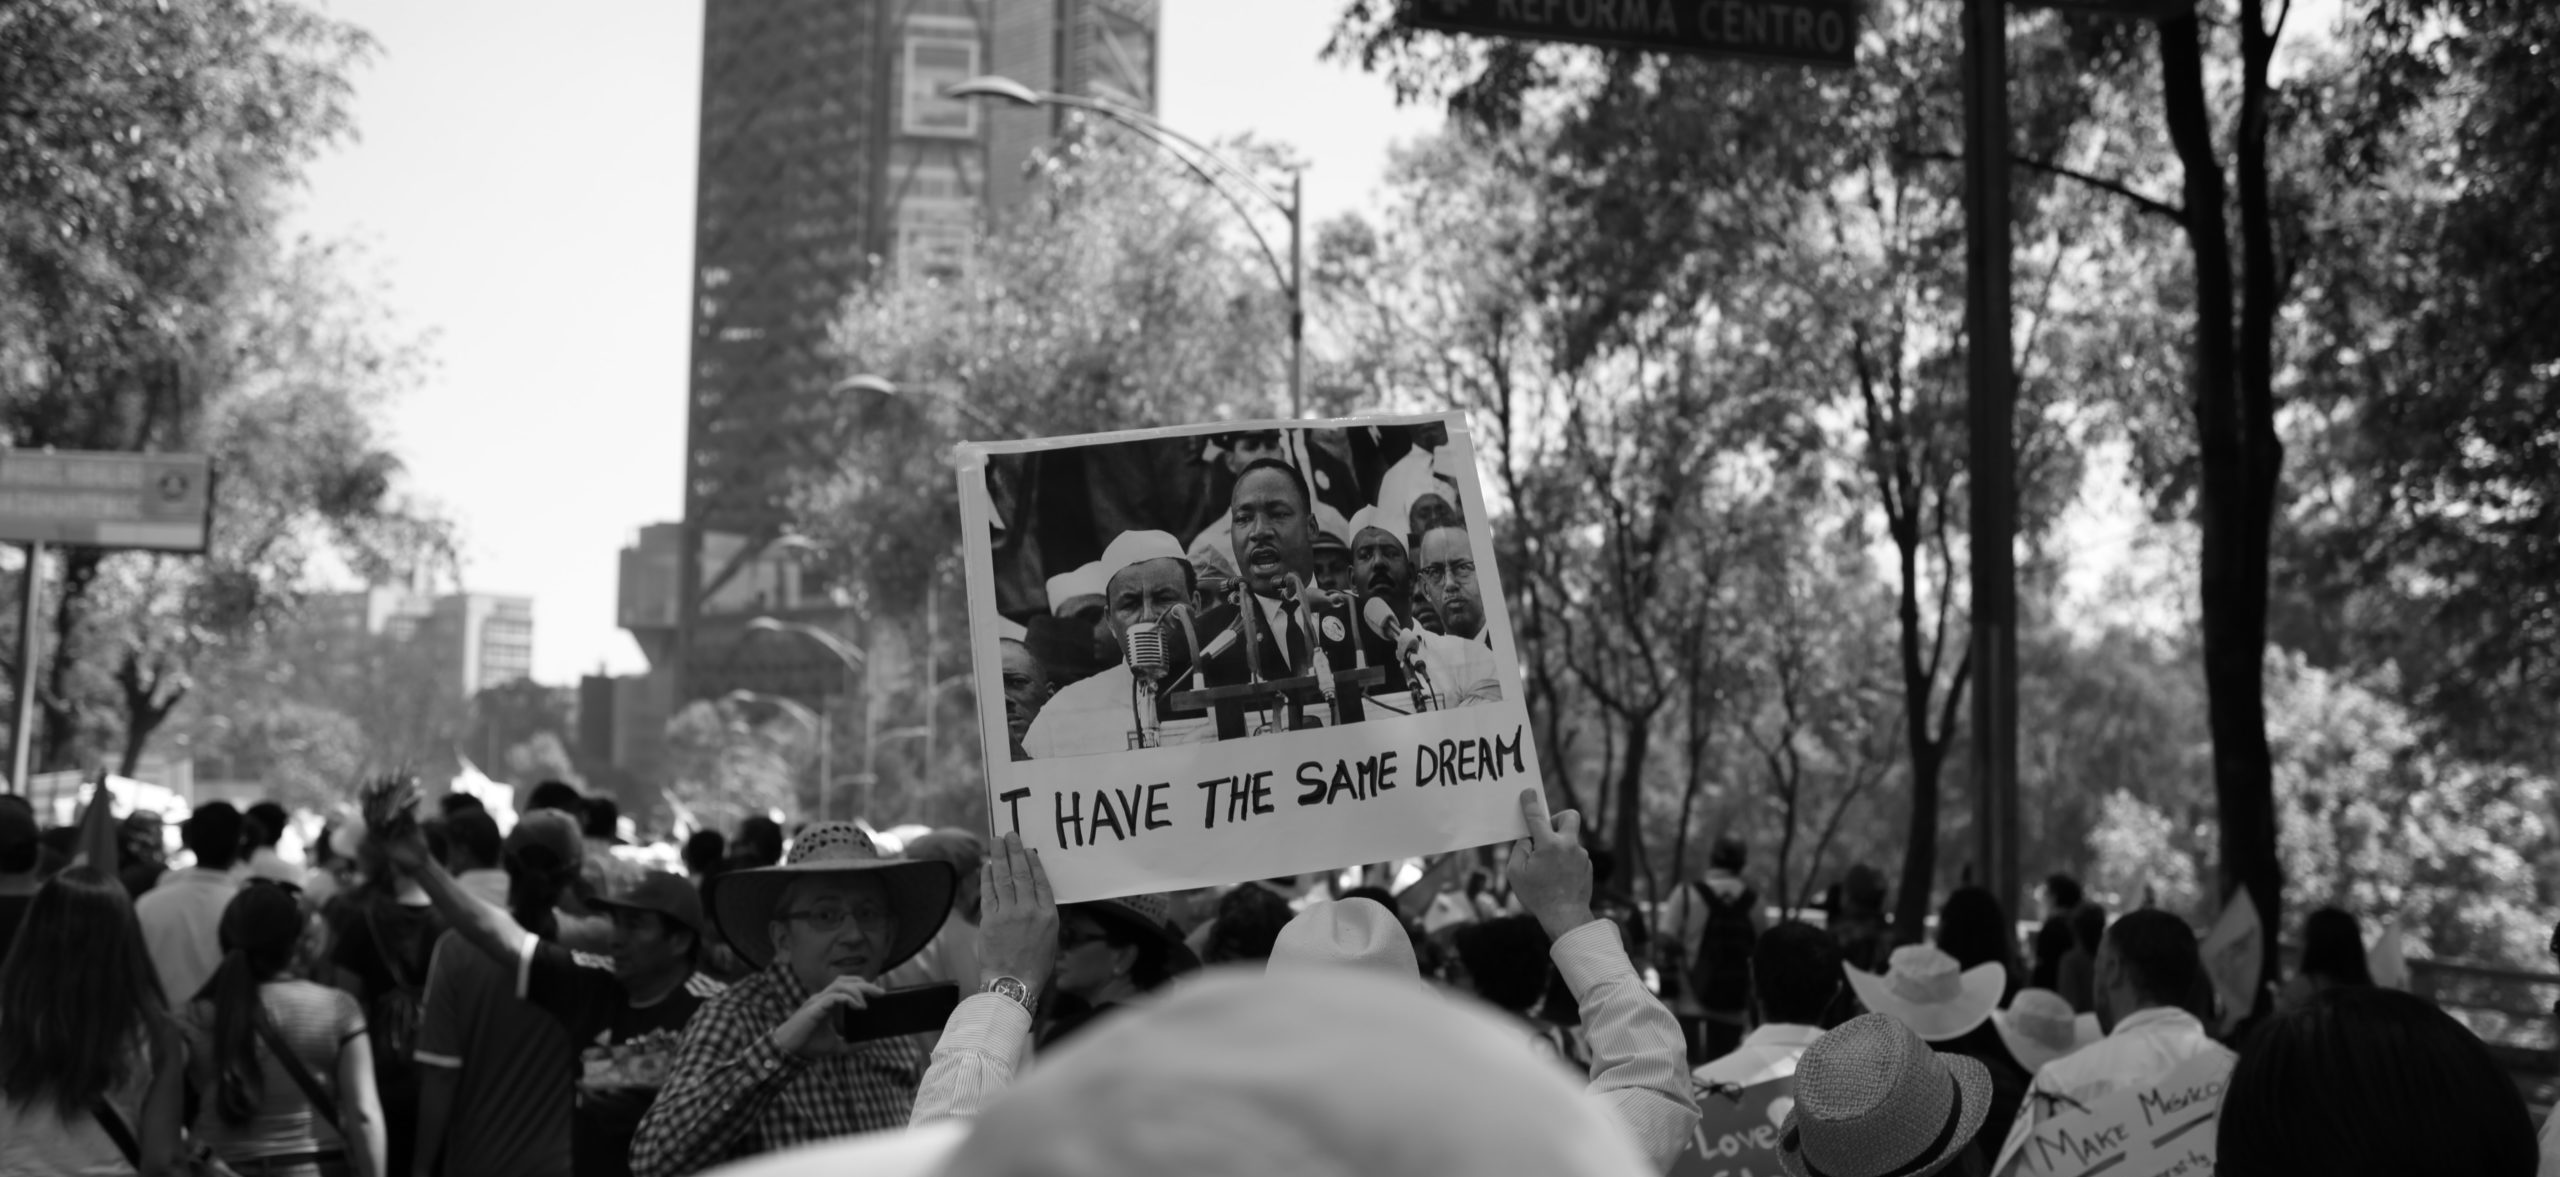 People at a protest with someone holding a Martin Luther King picture with I have the same dream quoted underneath